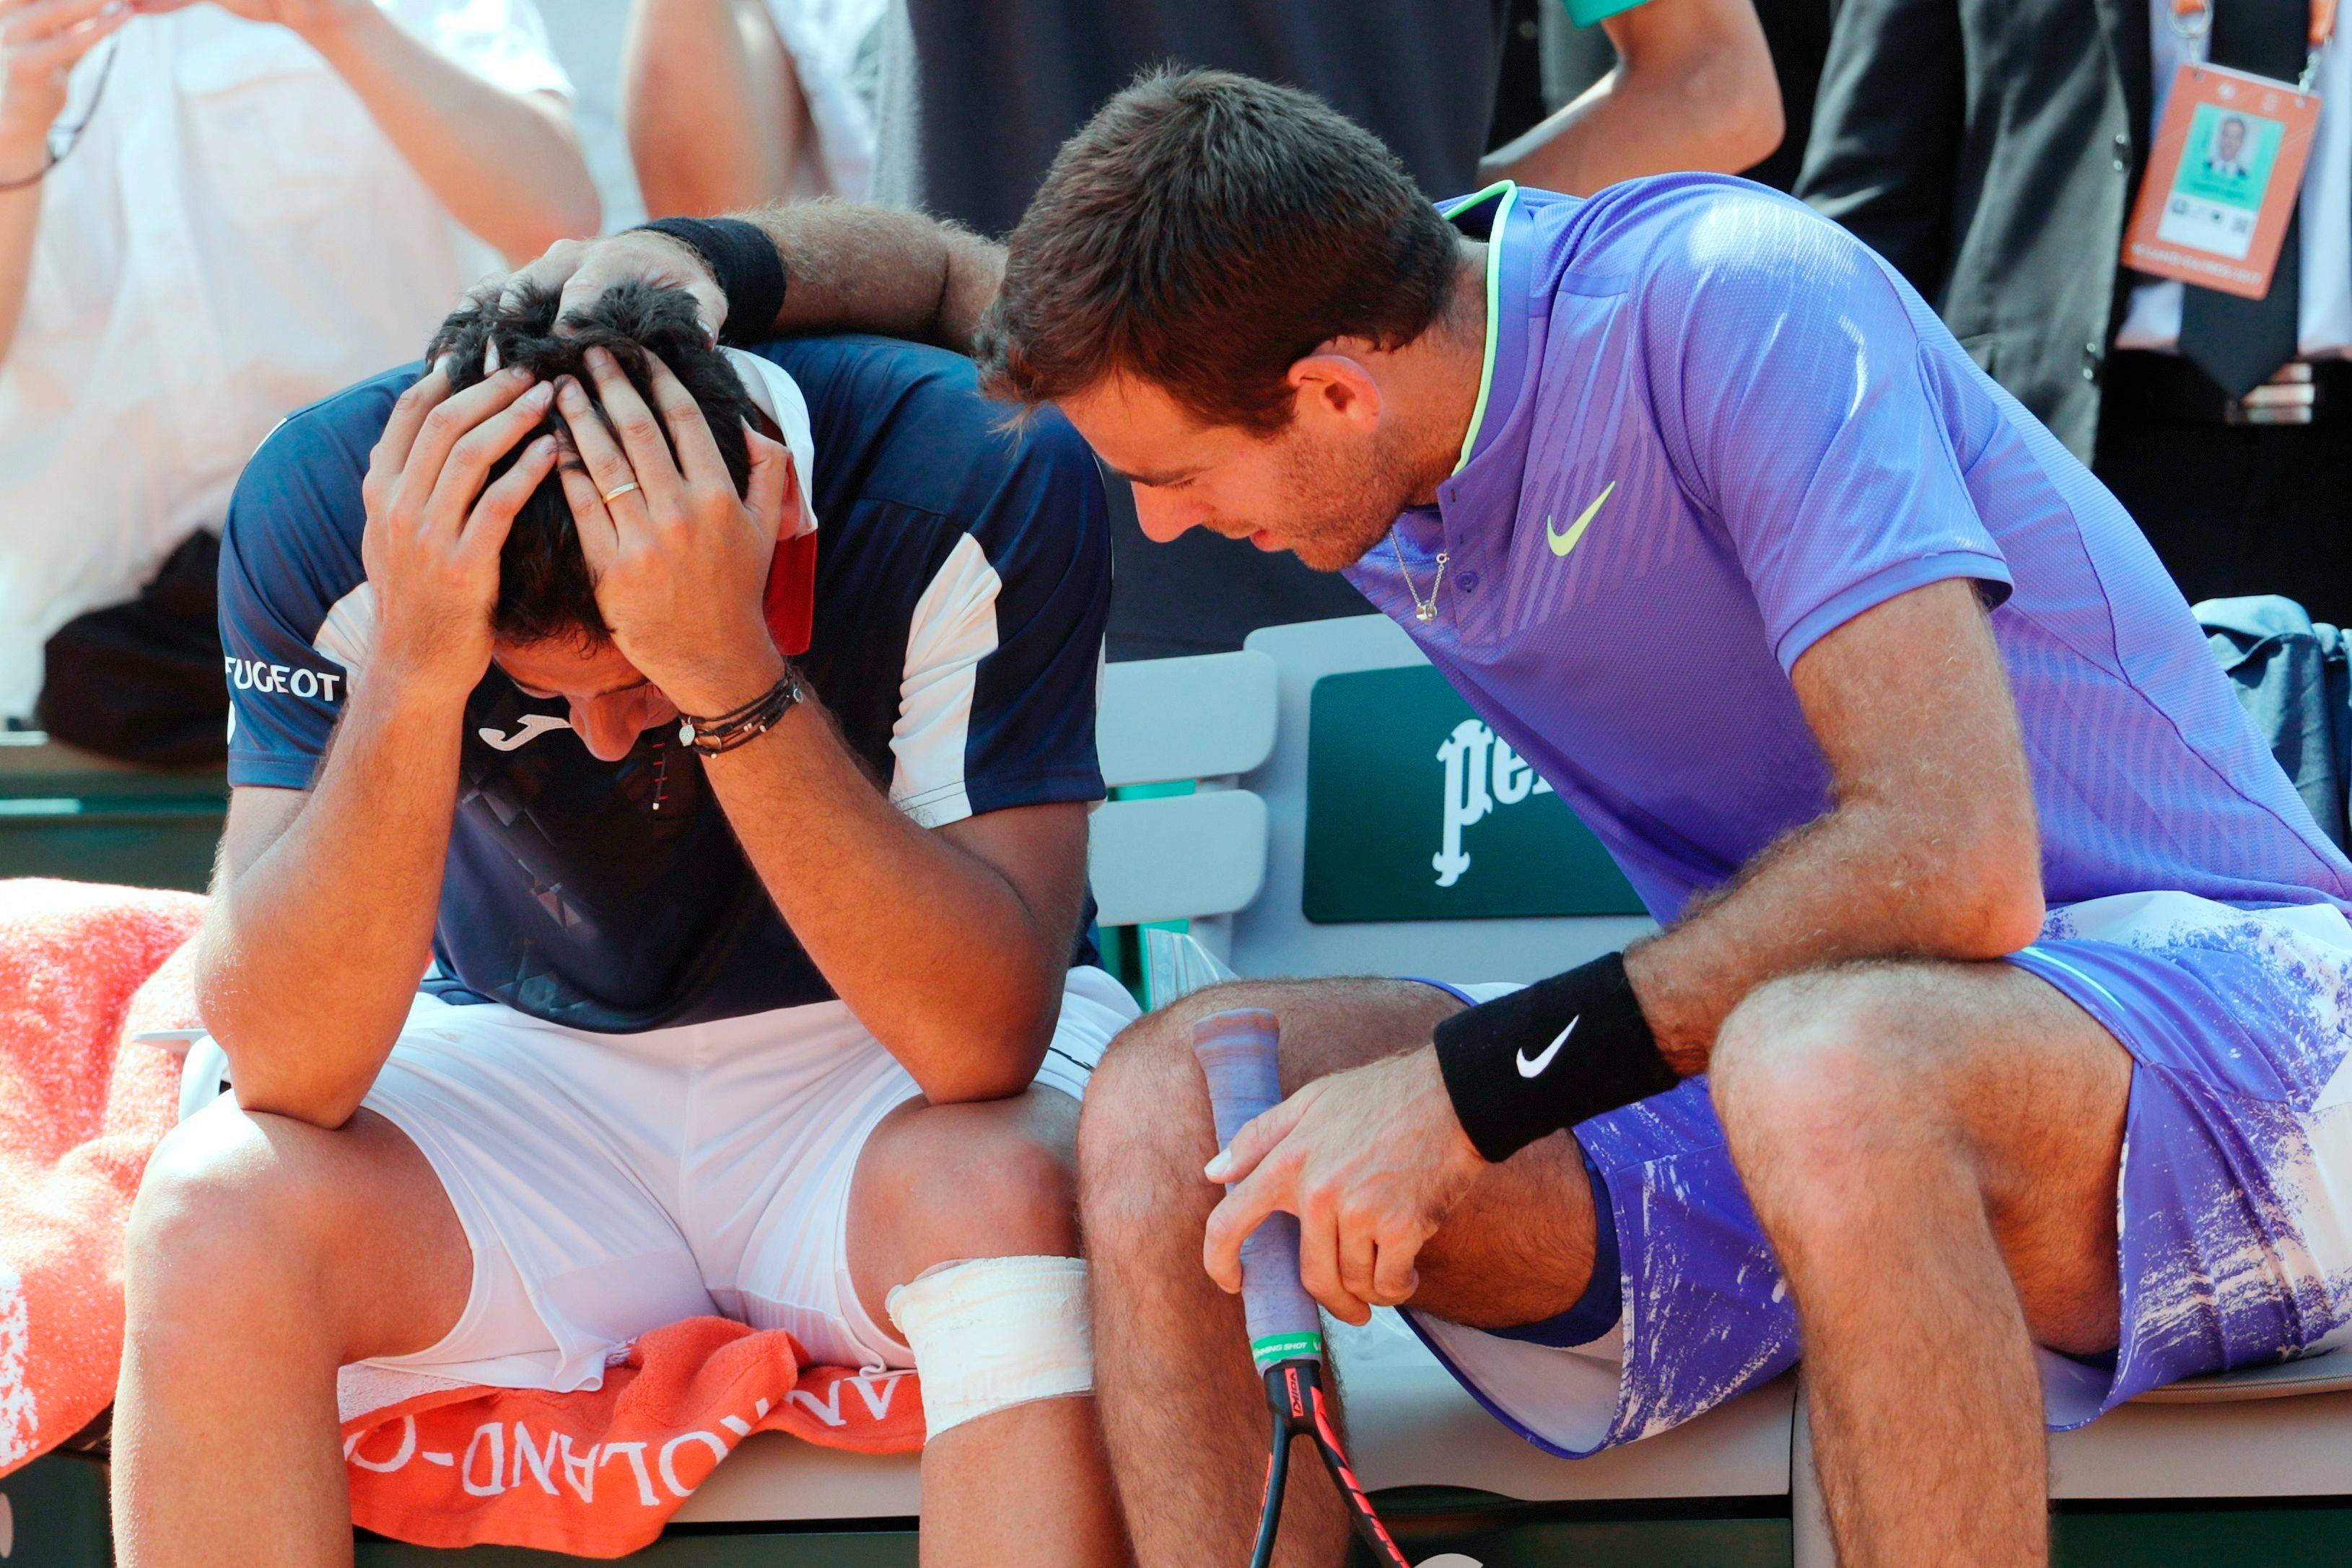 Spain's Nicolas Almagro (L) is comforted by Argentina's Juan Martin Del Potro as he has to give up due to an injury during their tennis match at the Roland Garros 2017 French Open on June 1, 2017 in Paris.  / AFP PHOTO / Thomas SAMSON        (Photo credit should read THOMAS SAMSON/AFP/Getty Images)